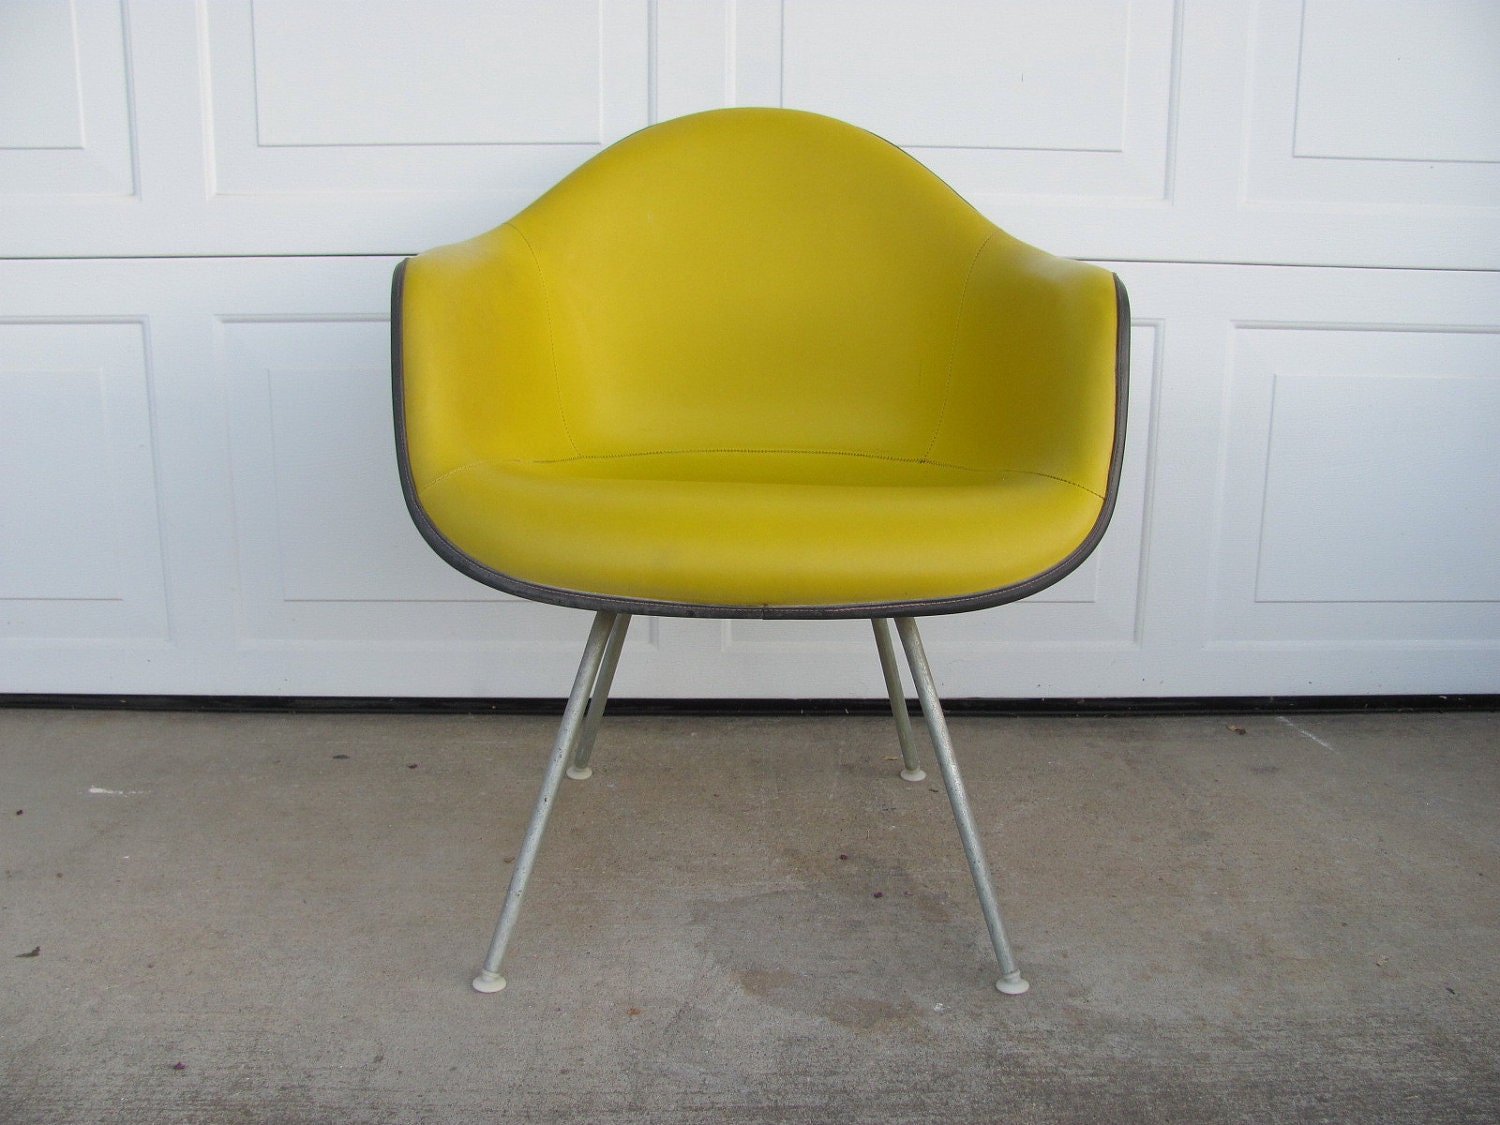 vintage eames herman miller mid century modern shell chair. Black Bedroom Furniture Sets. Home Design Ideas